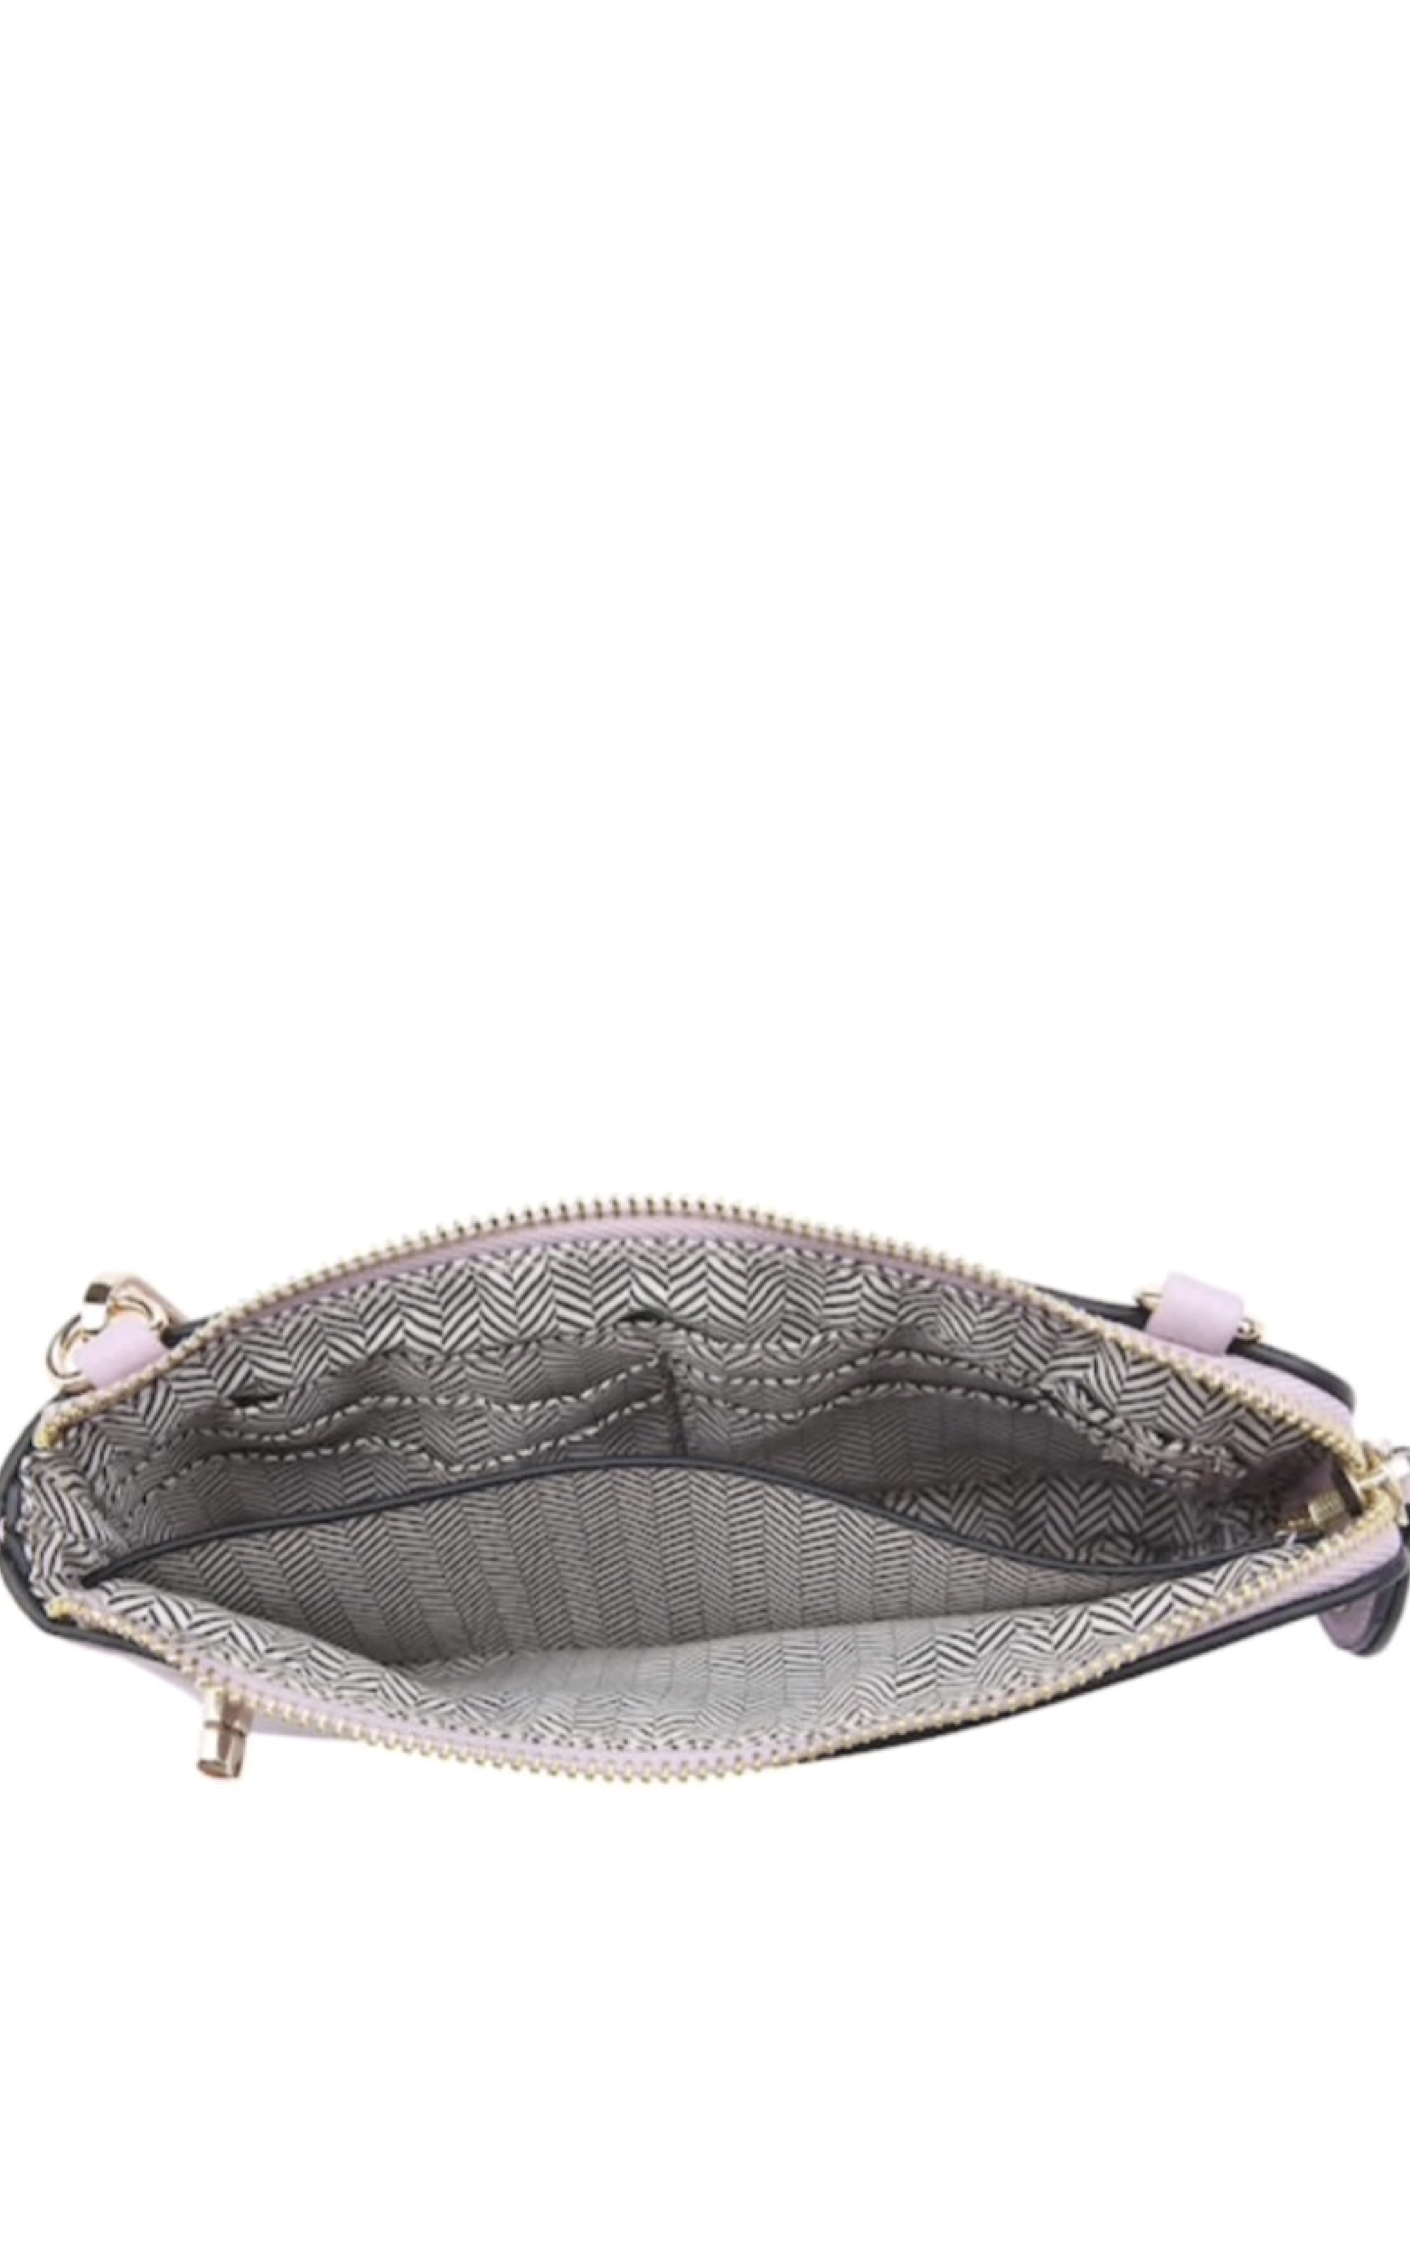 Twist Lock Wristlet/Crossbody Bag